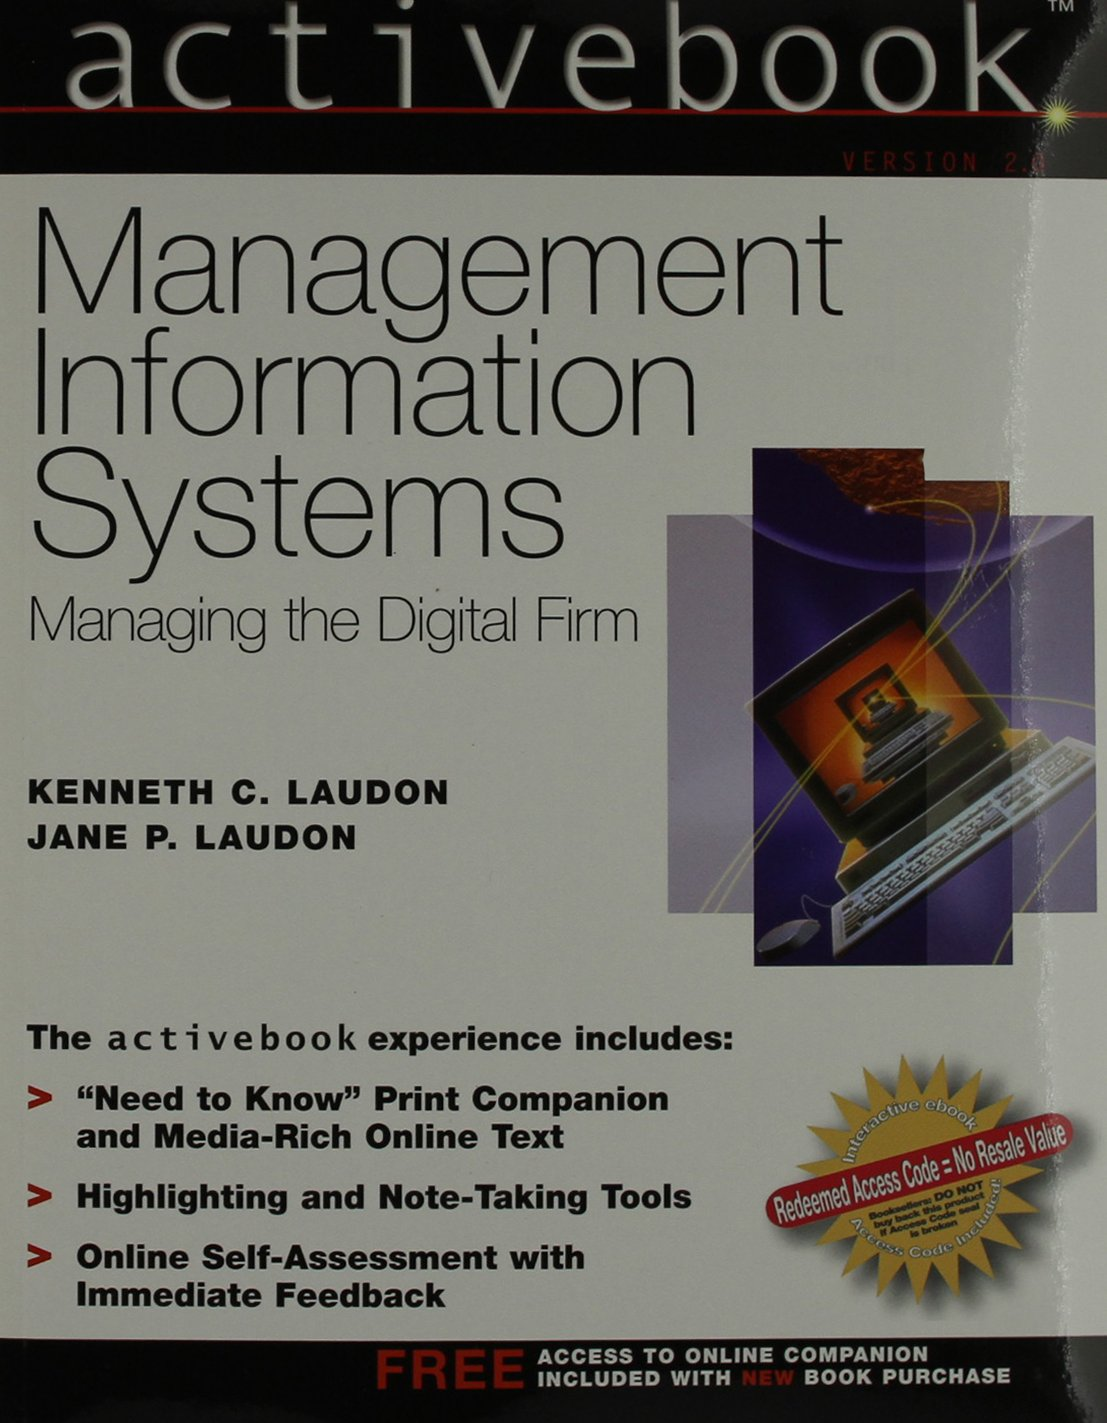 ActiveBook, Management Information Systems (8th Edition)